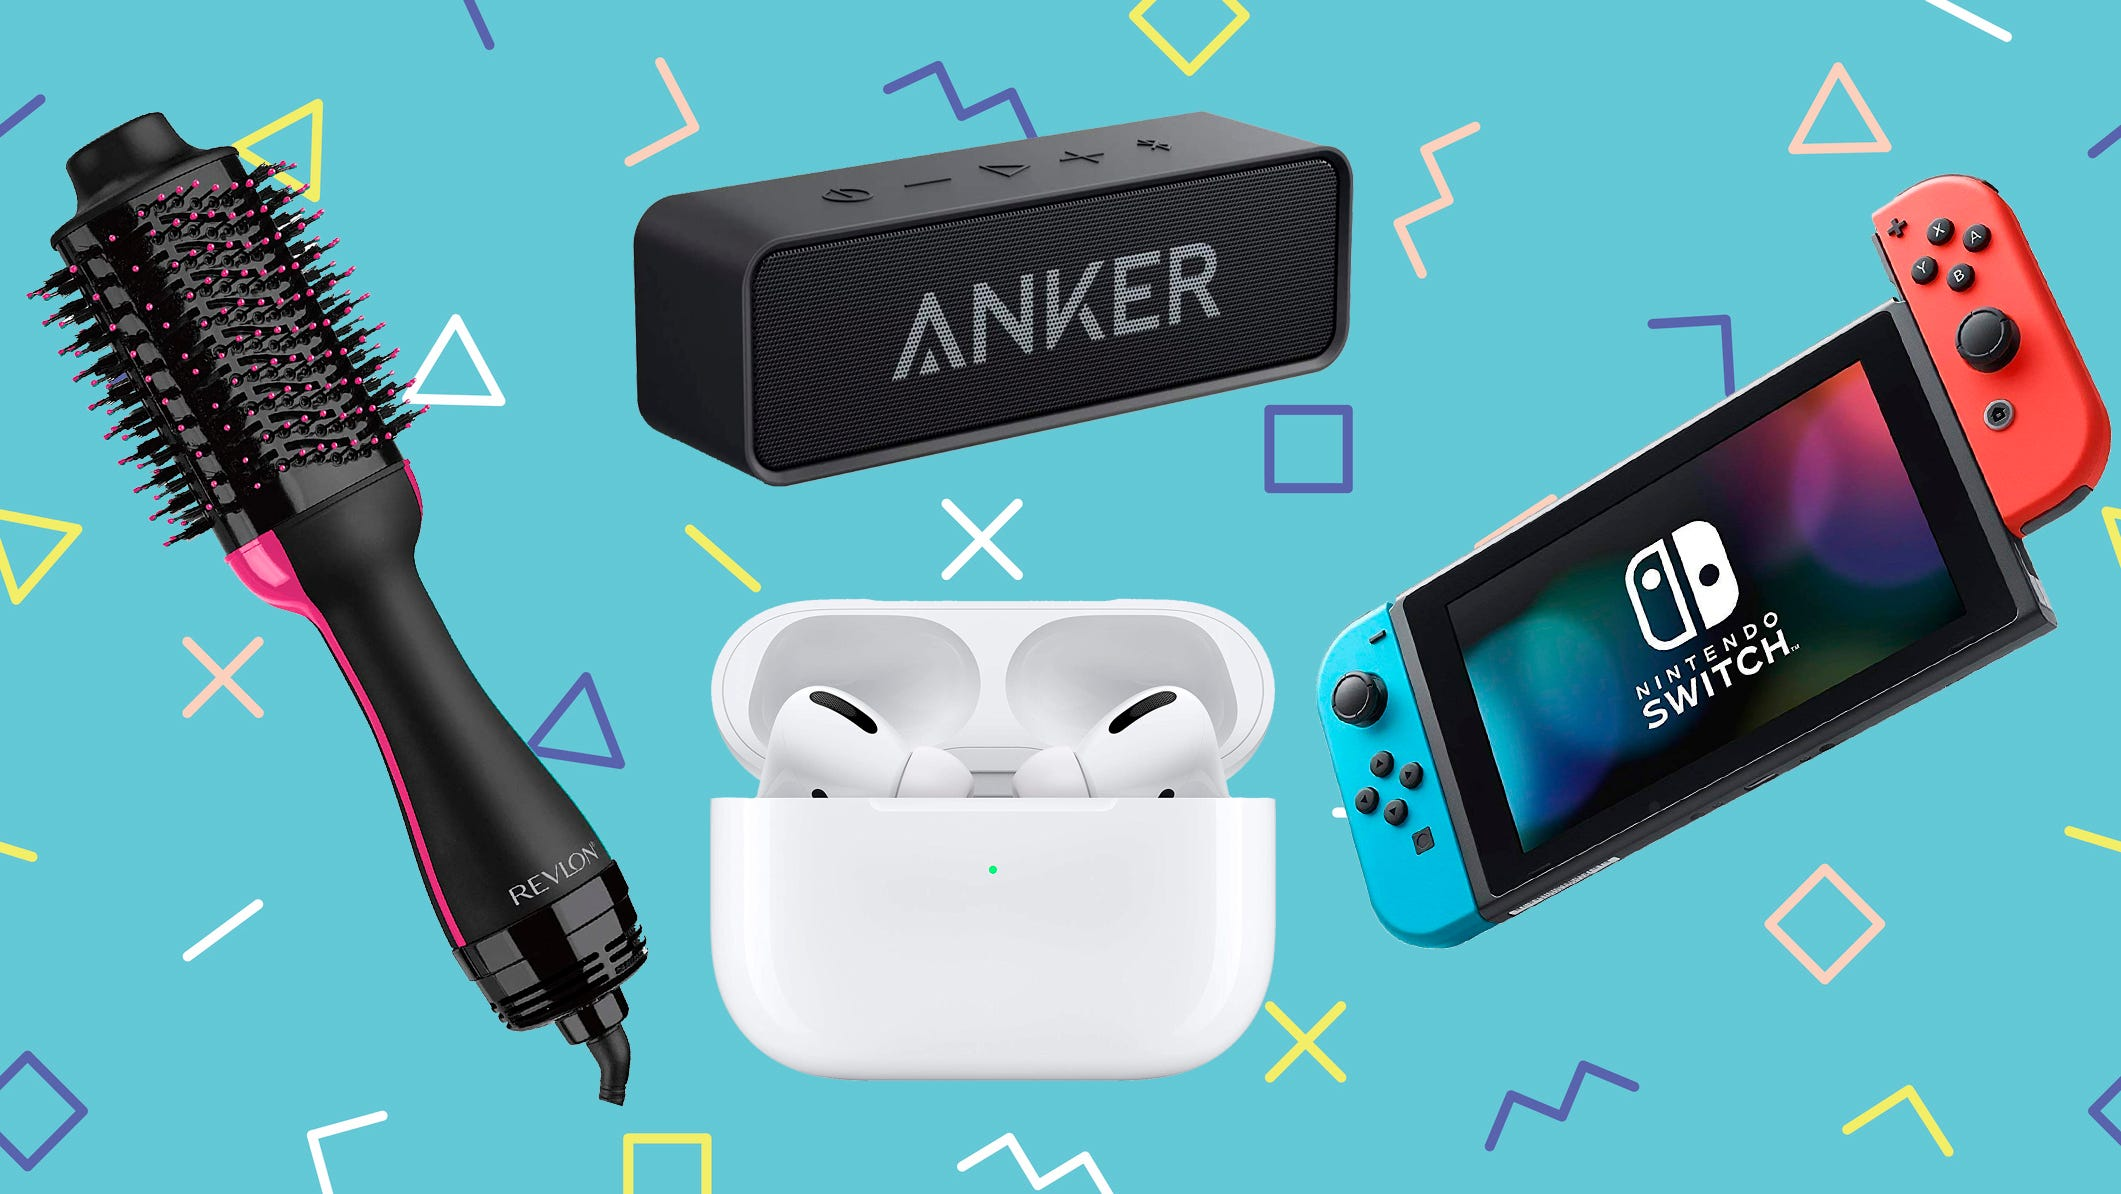 The 40 best gifts everyone is buying in 2020